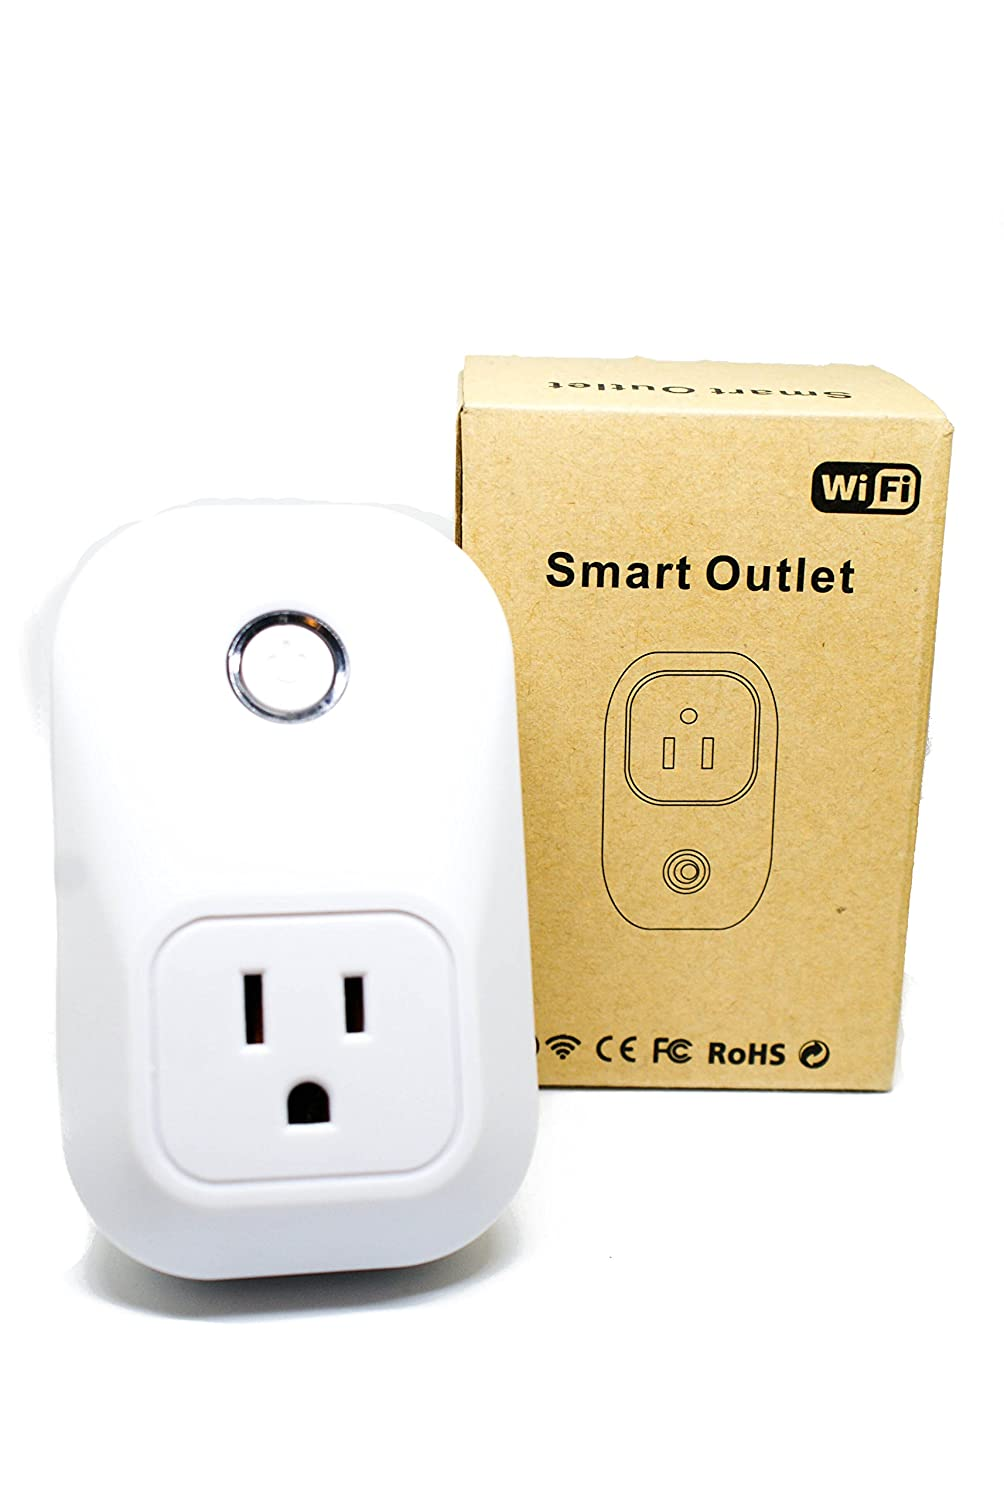 Wifi Smart Plug Outlet Works With Most Home Controls Tan America Timer Wiring Diagram No Hub Required Turn On Off From Anywhere